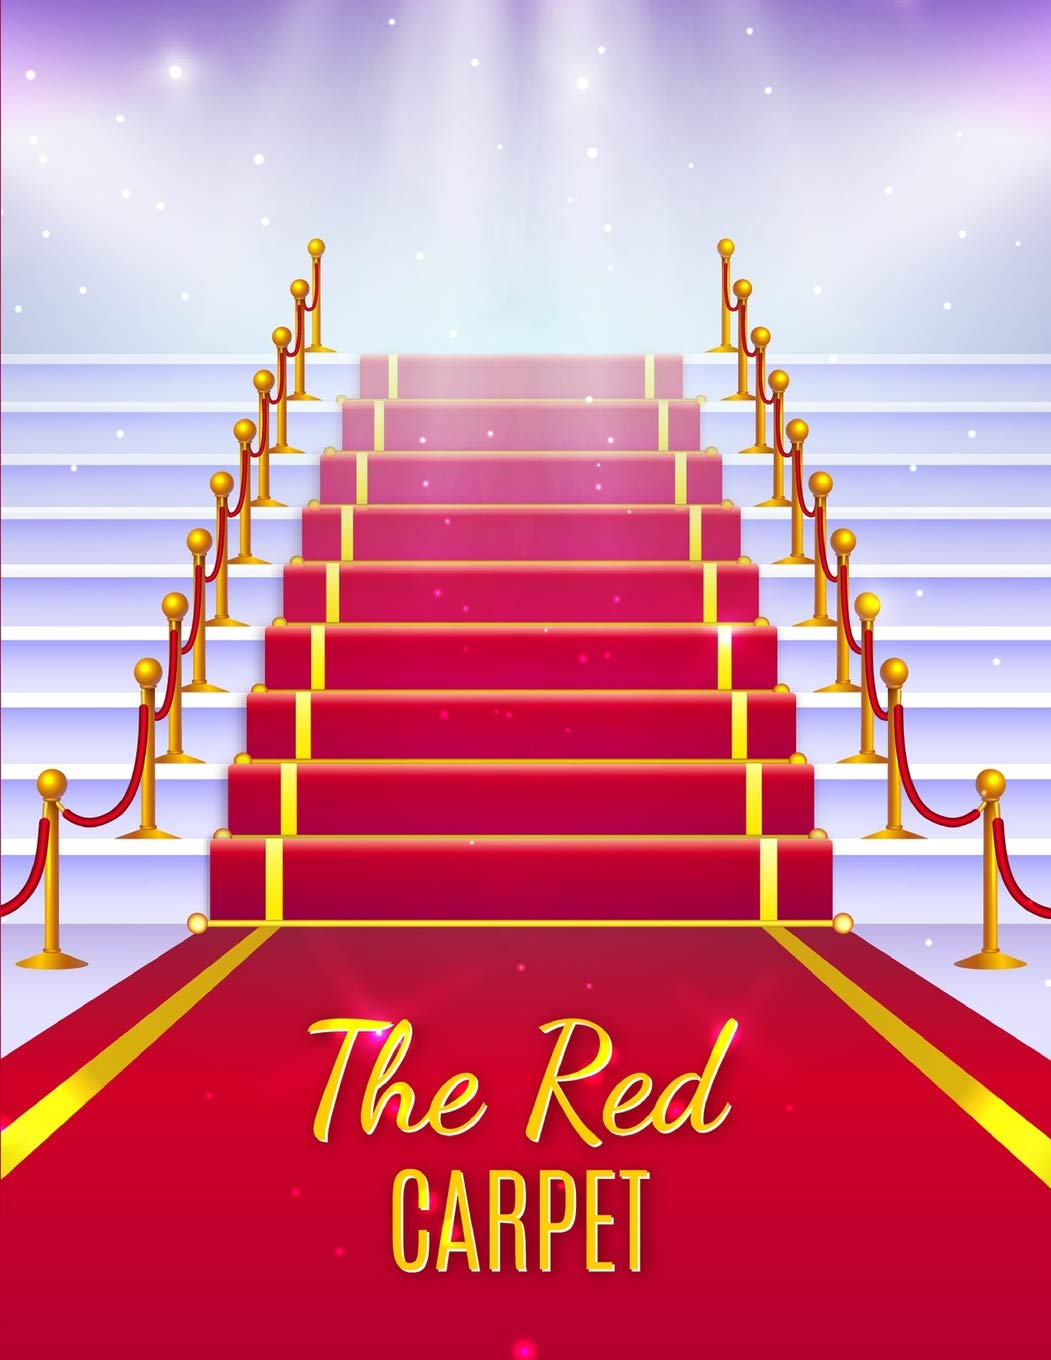 Download The Red Carpet: Actress Actor Movie Cinema Journal Book Ruled Lined Page For Kids Boy Teen Girl Women Men Superstar Great For Writing Film Diary Award ... x 11 Inches) (Red Carpet Notebook) (Volume 3) pdf epub